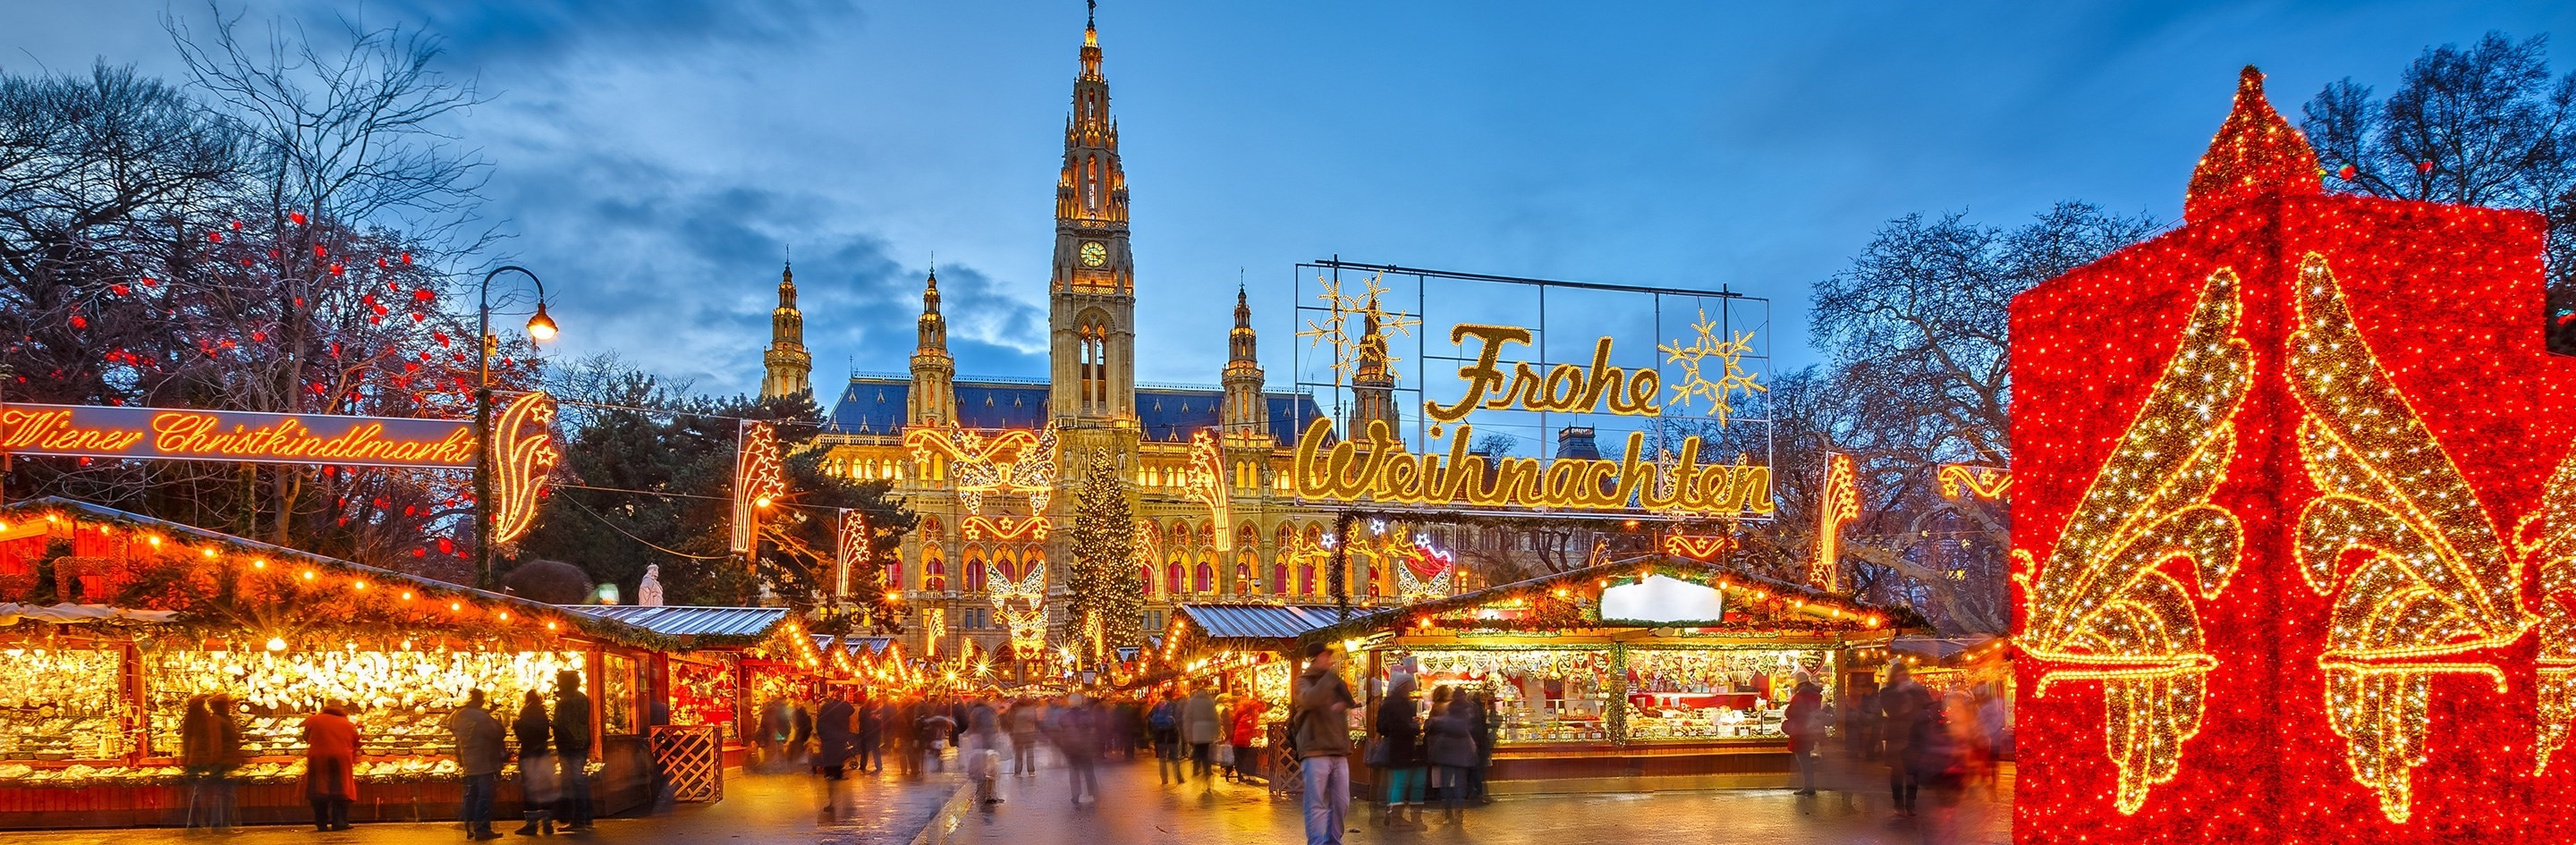 Christmas Markets on The Danube River Cruise 2017 | AmaWaterways™